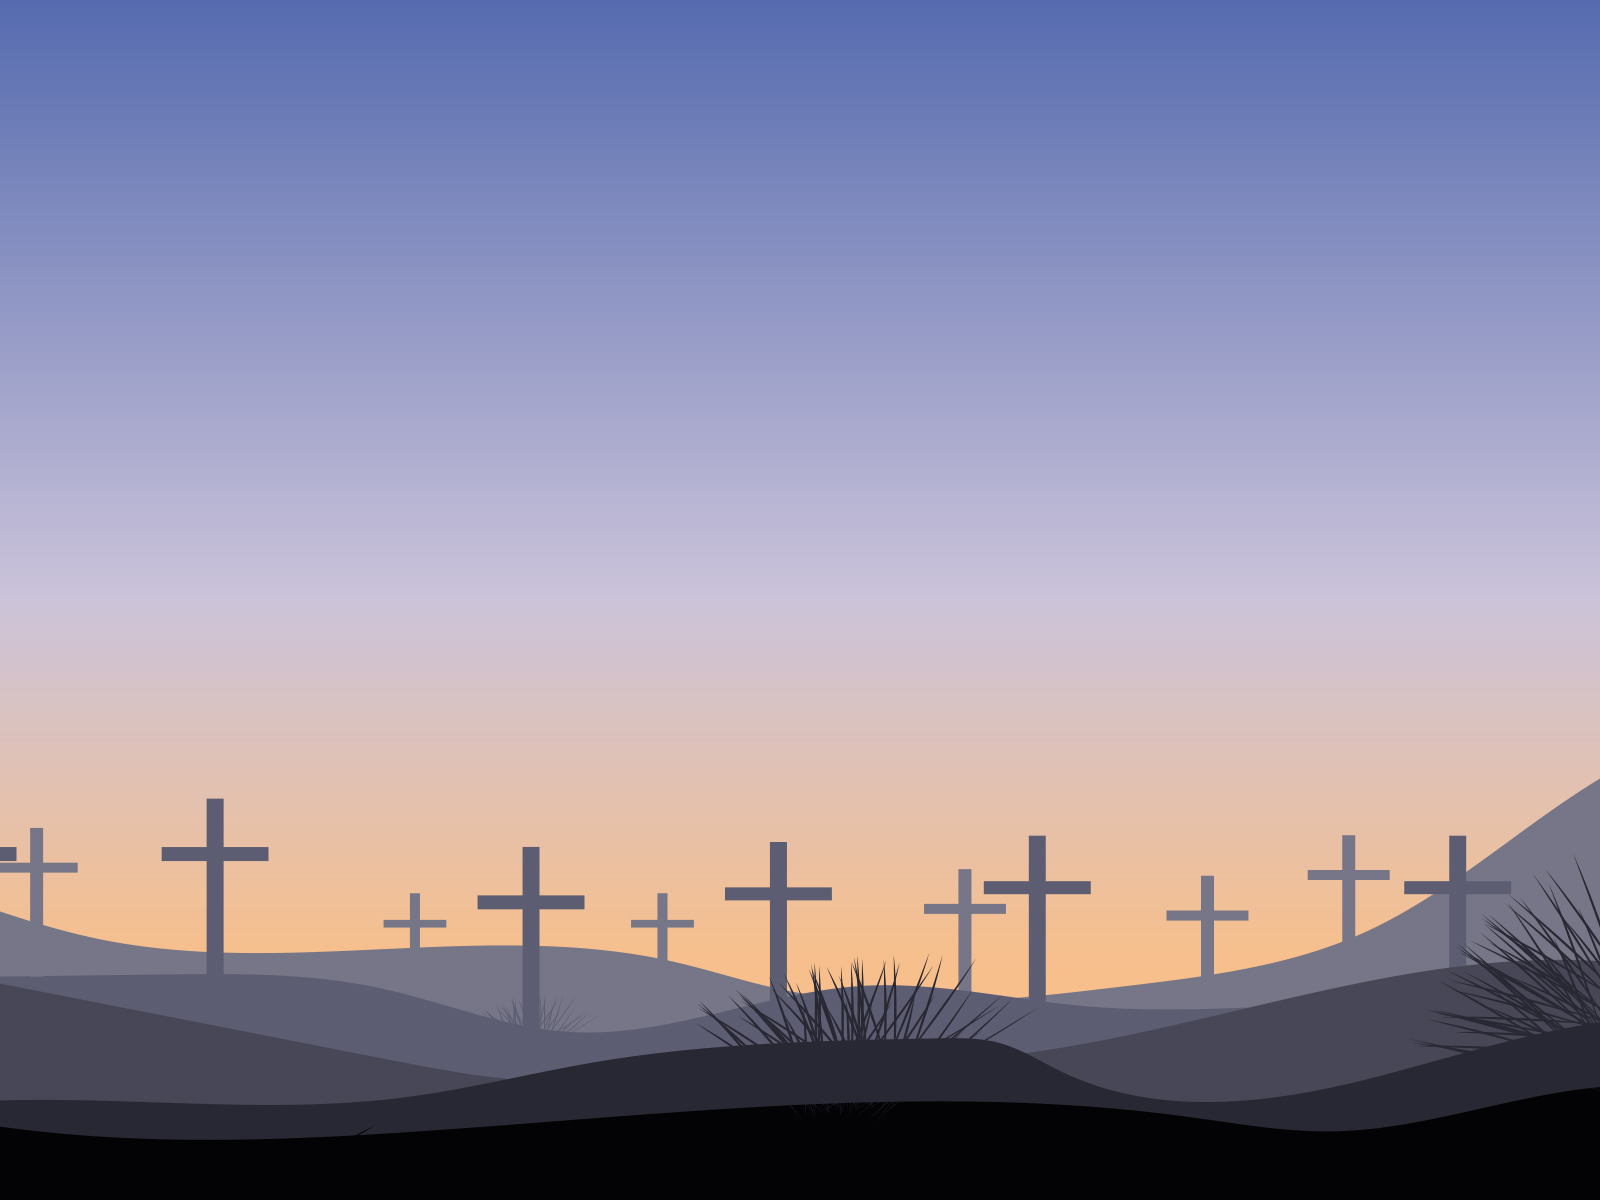 Black Abstract Wallpaper Christian Cemetery Backgrounds Religious Templates